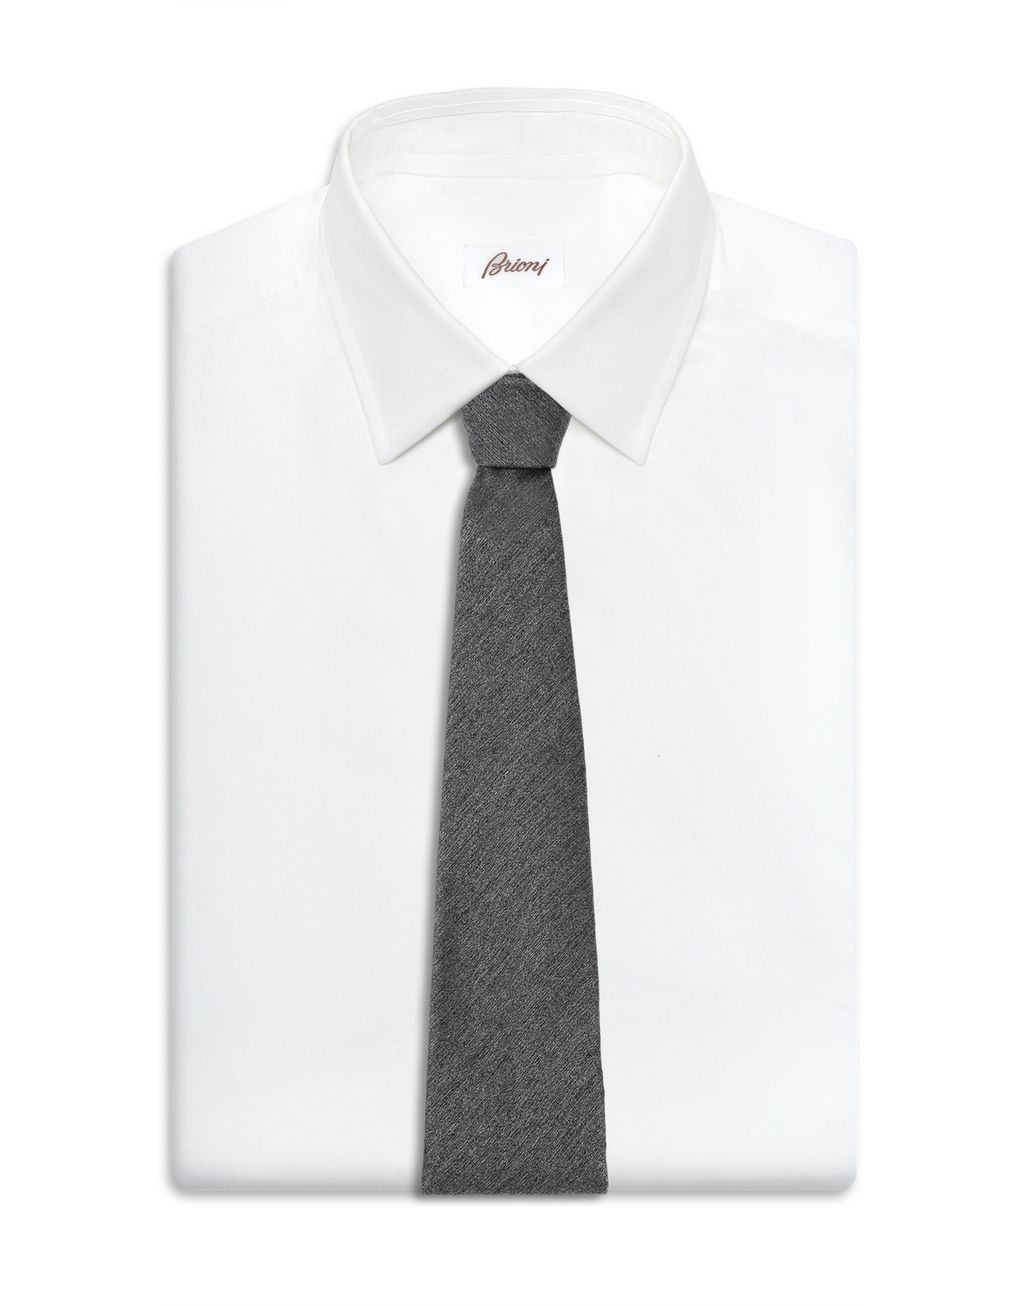 BRIONI Cravate gris graphite Cravate [*** pickupInStoreShippingNotGuaranteed_info ***] d